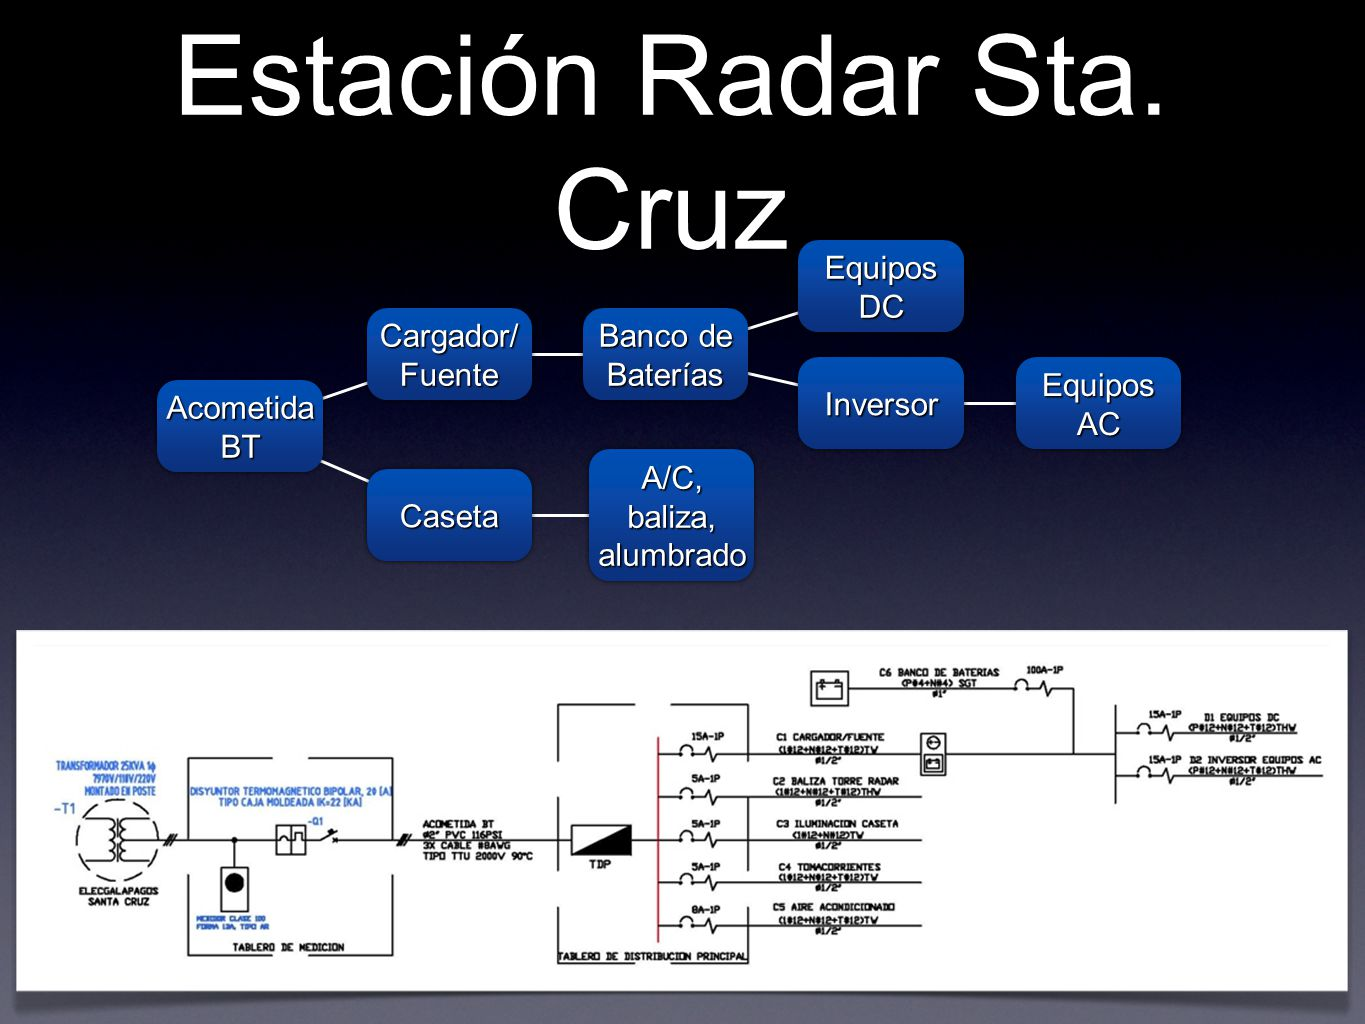 Estación Radar Sta. Cruz